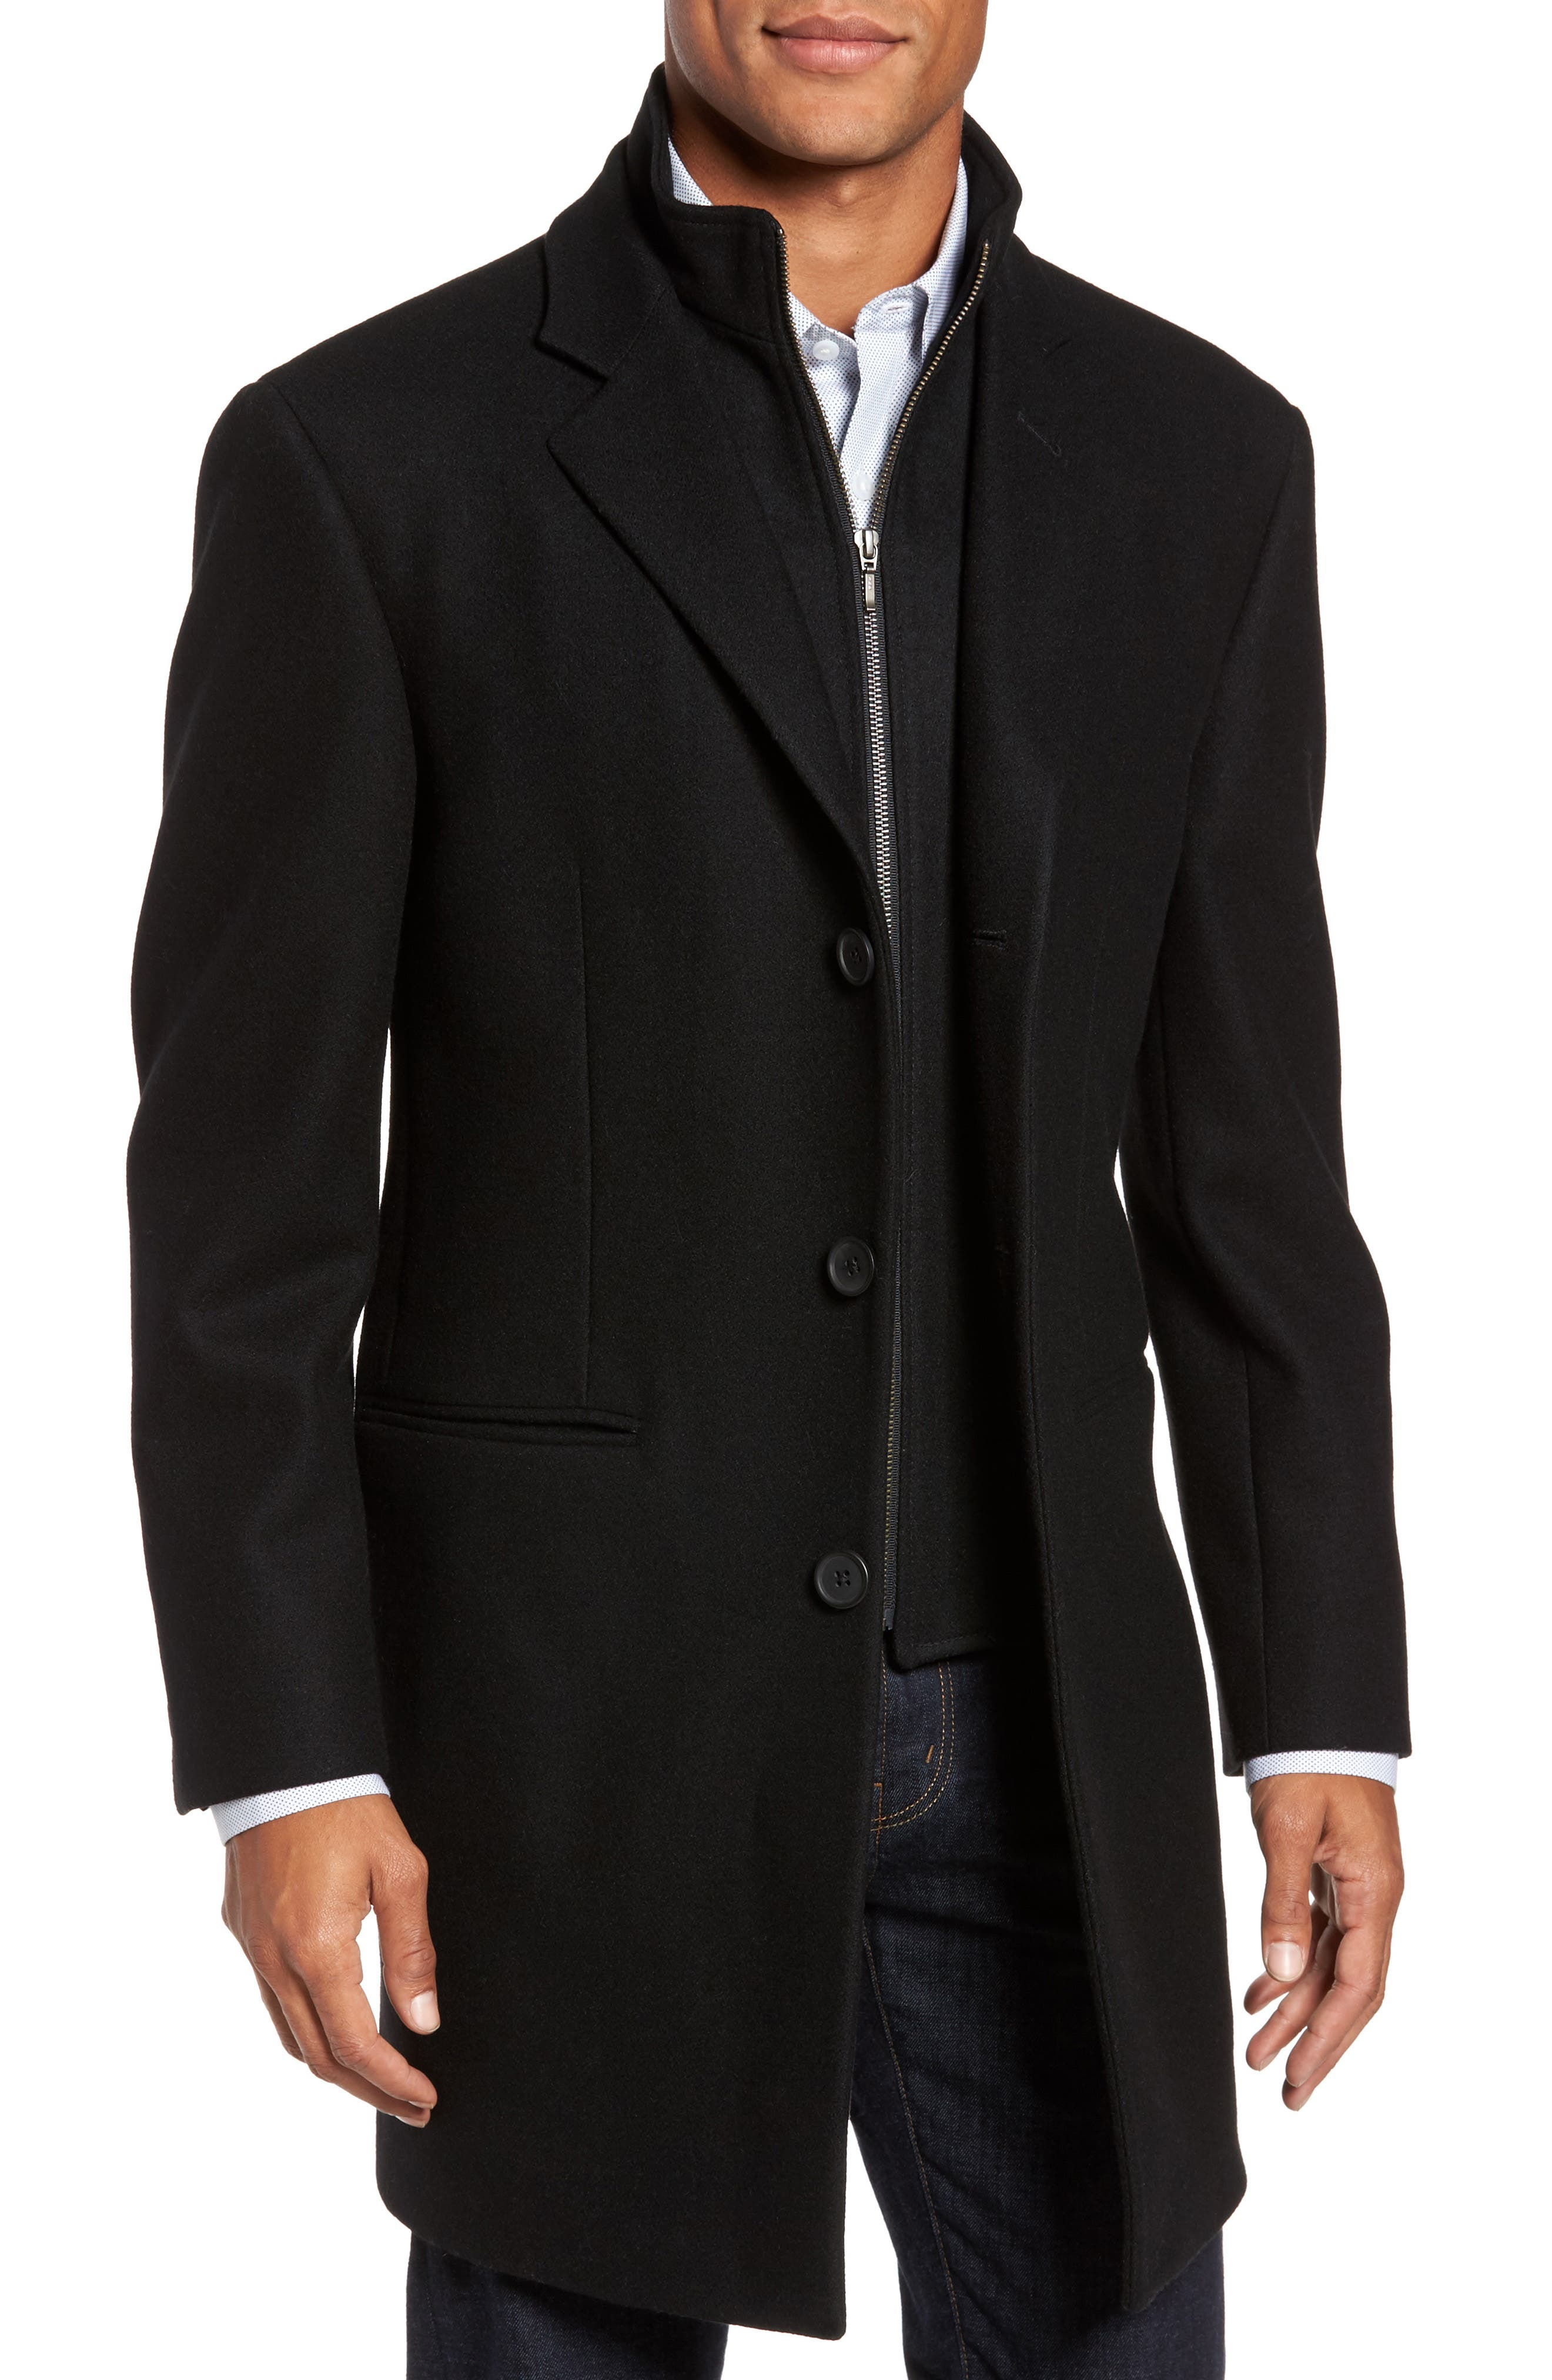 Carson Wool Blend Overcoat,                             Main thumbnail 1, color,                             001